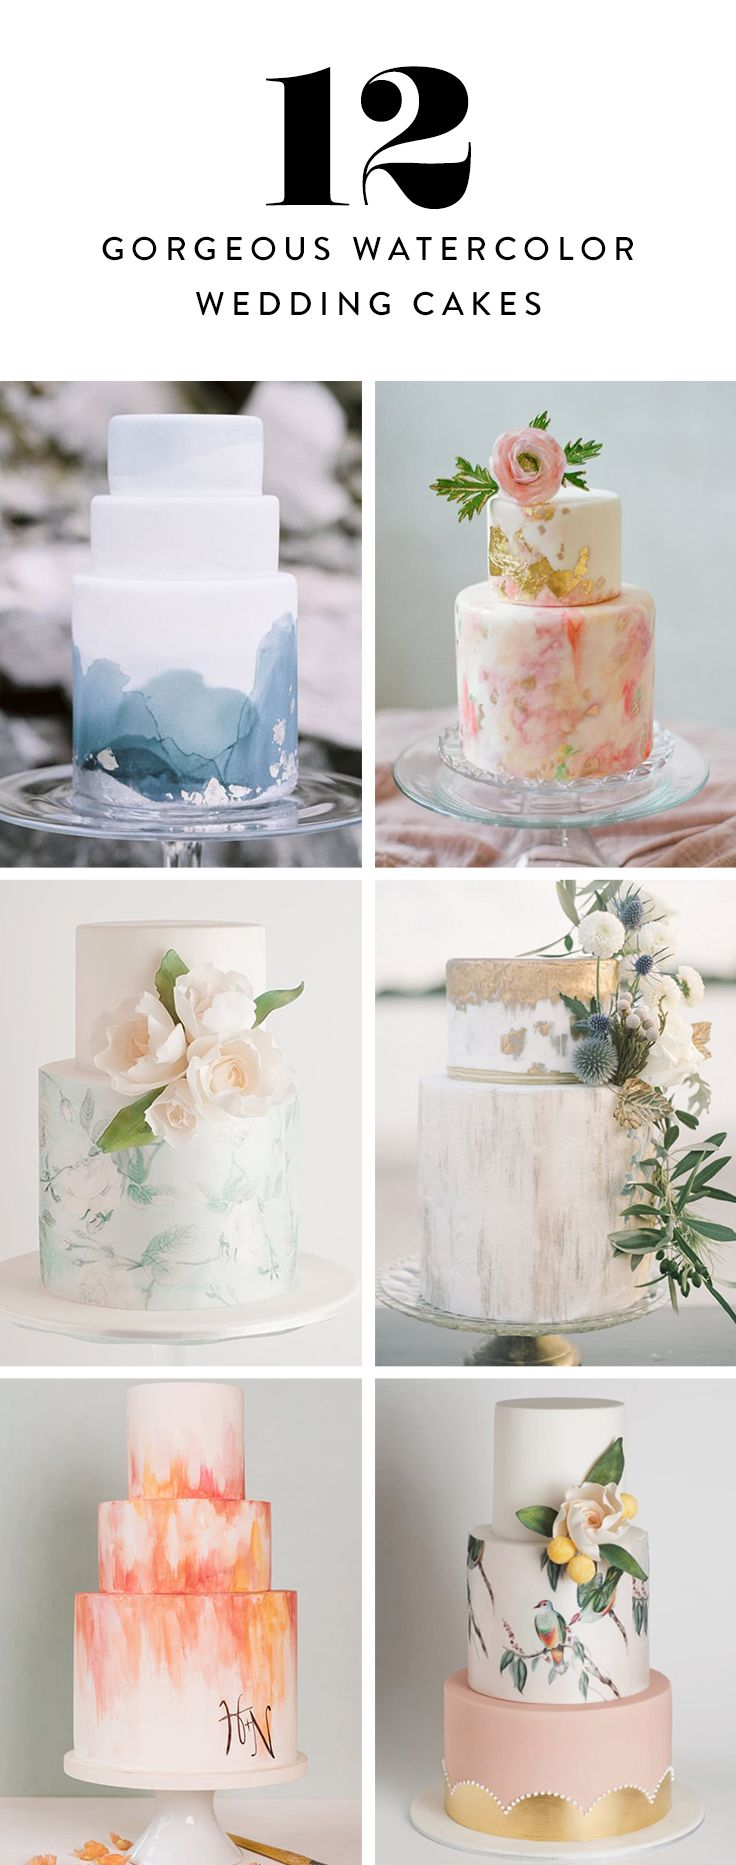 Introducing watercolor wedding cakes. These hand-painted masterpieces are seriously too gorgeous to eat. Here are 12 of the prettiest.